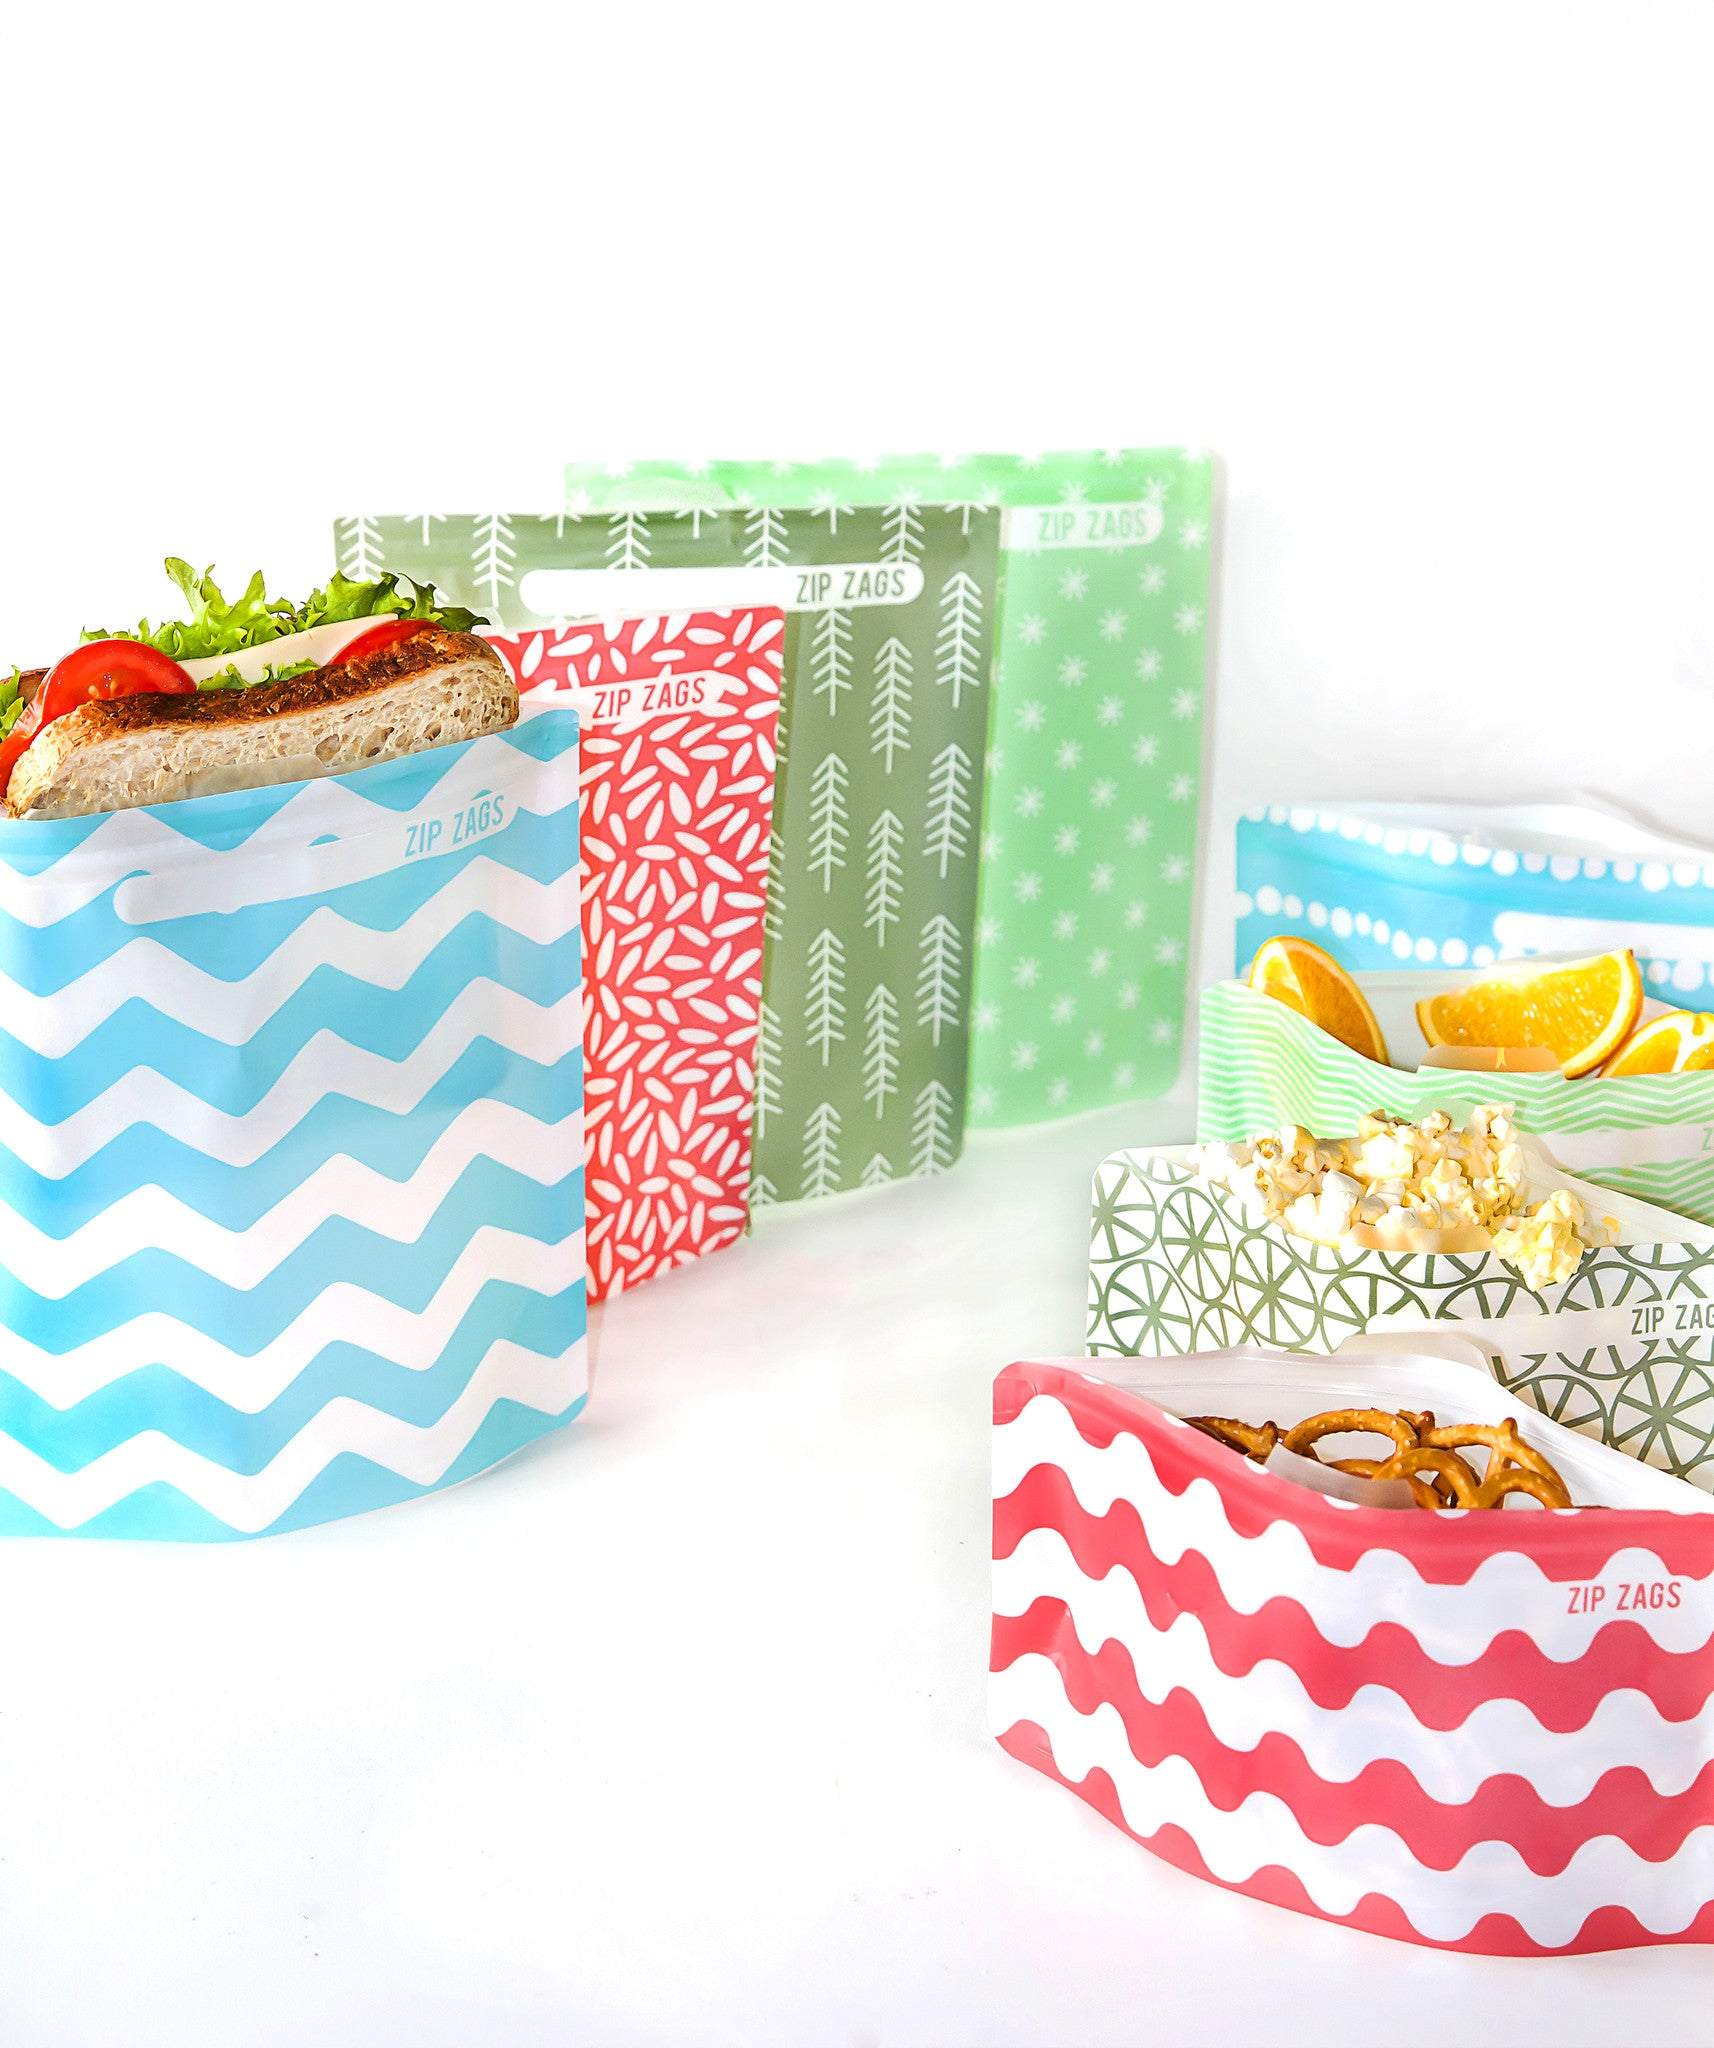 Zip Zags reusable snack bags- Green 4 piece kit